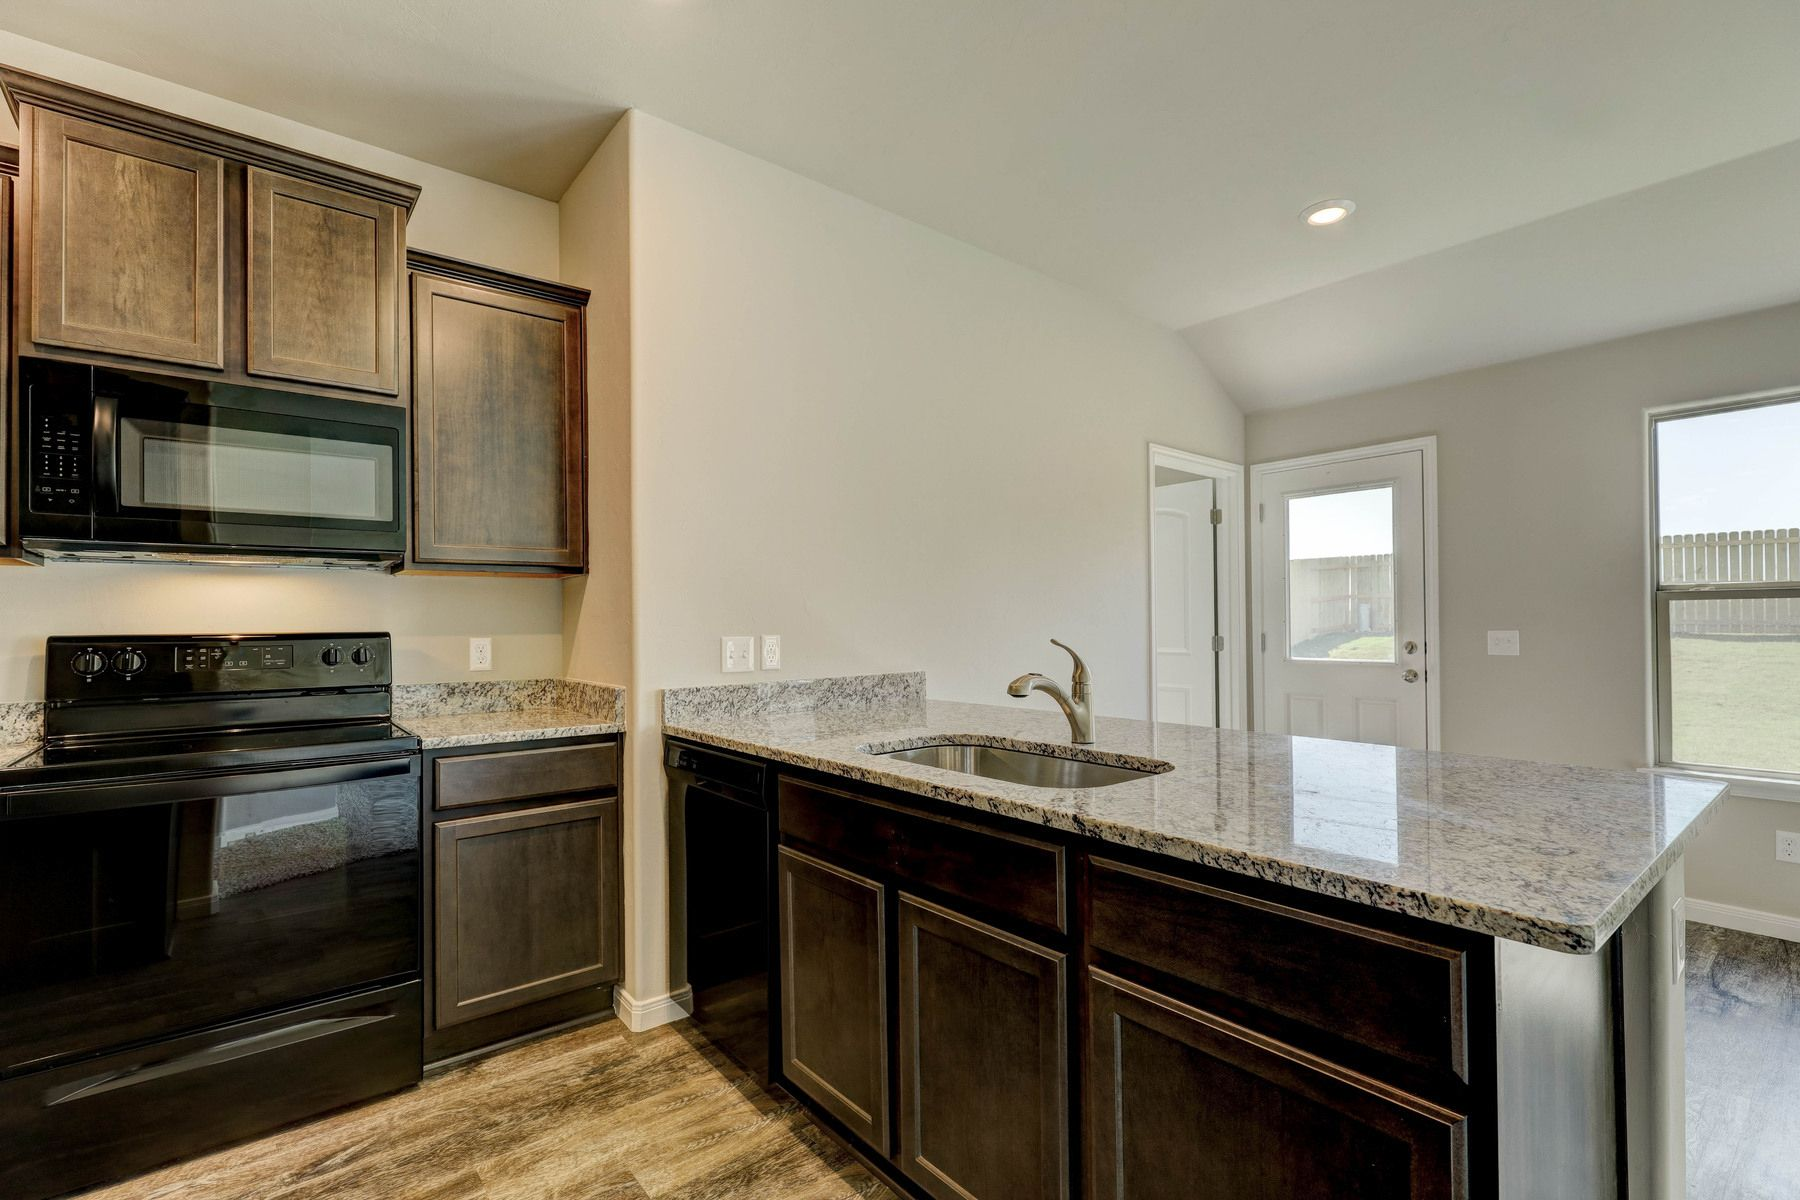 Kitchen featured in the Jaxton By LGI Homes in Oklahoma City, OK